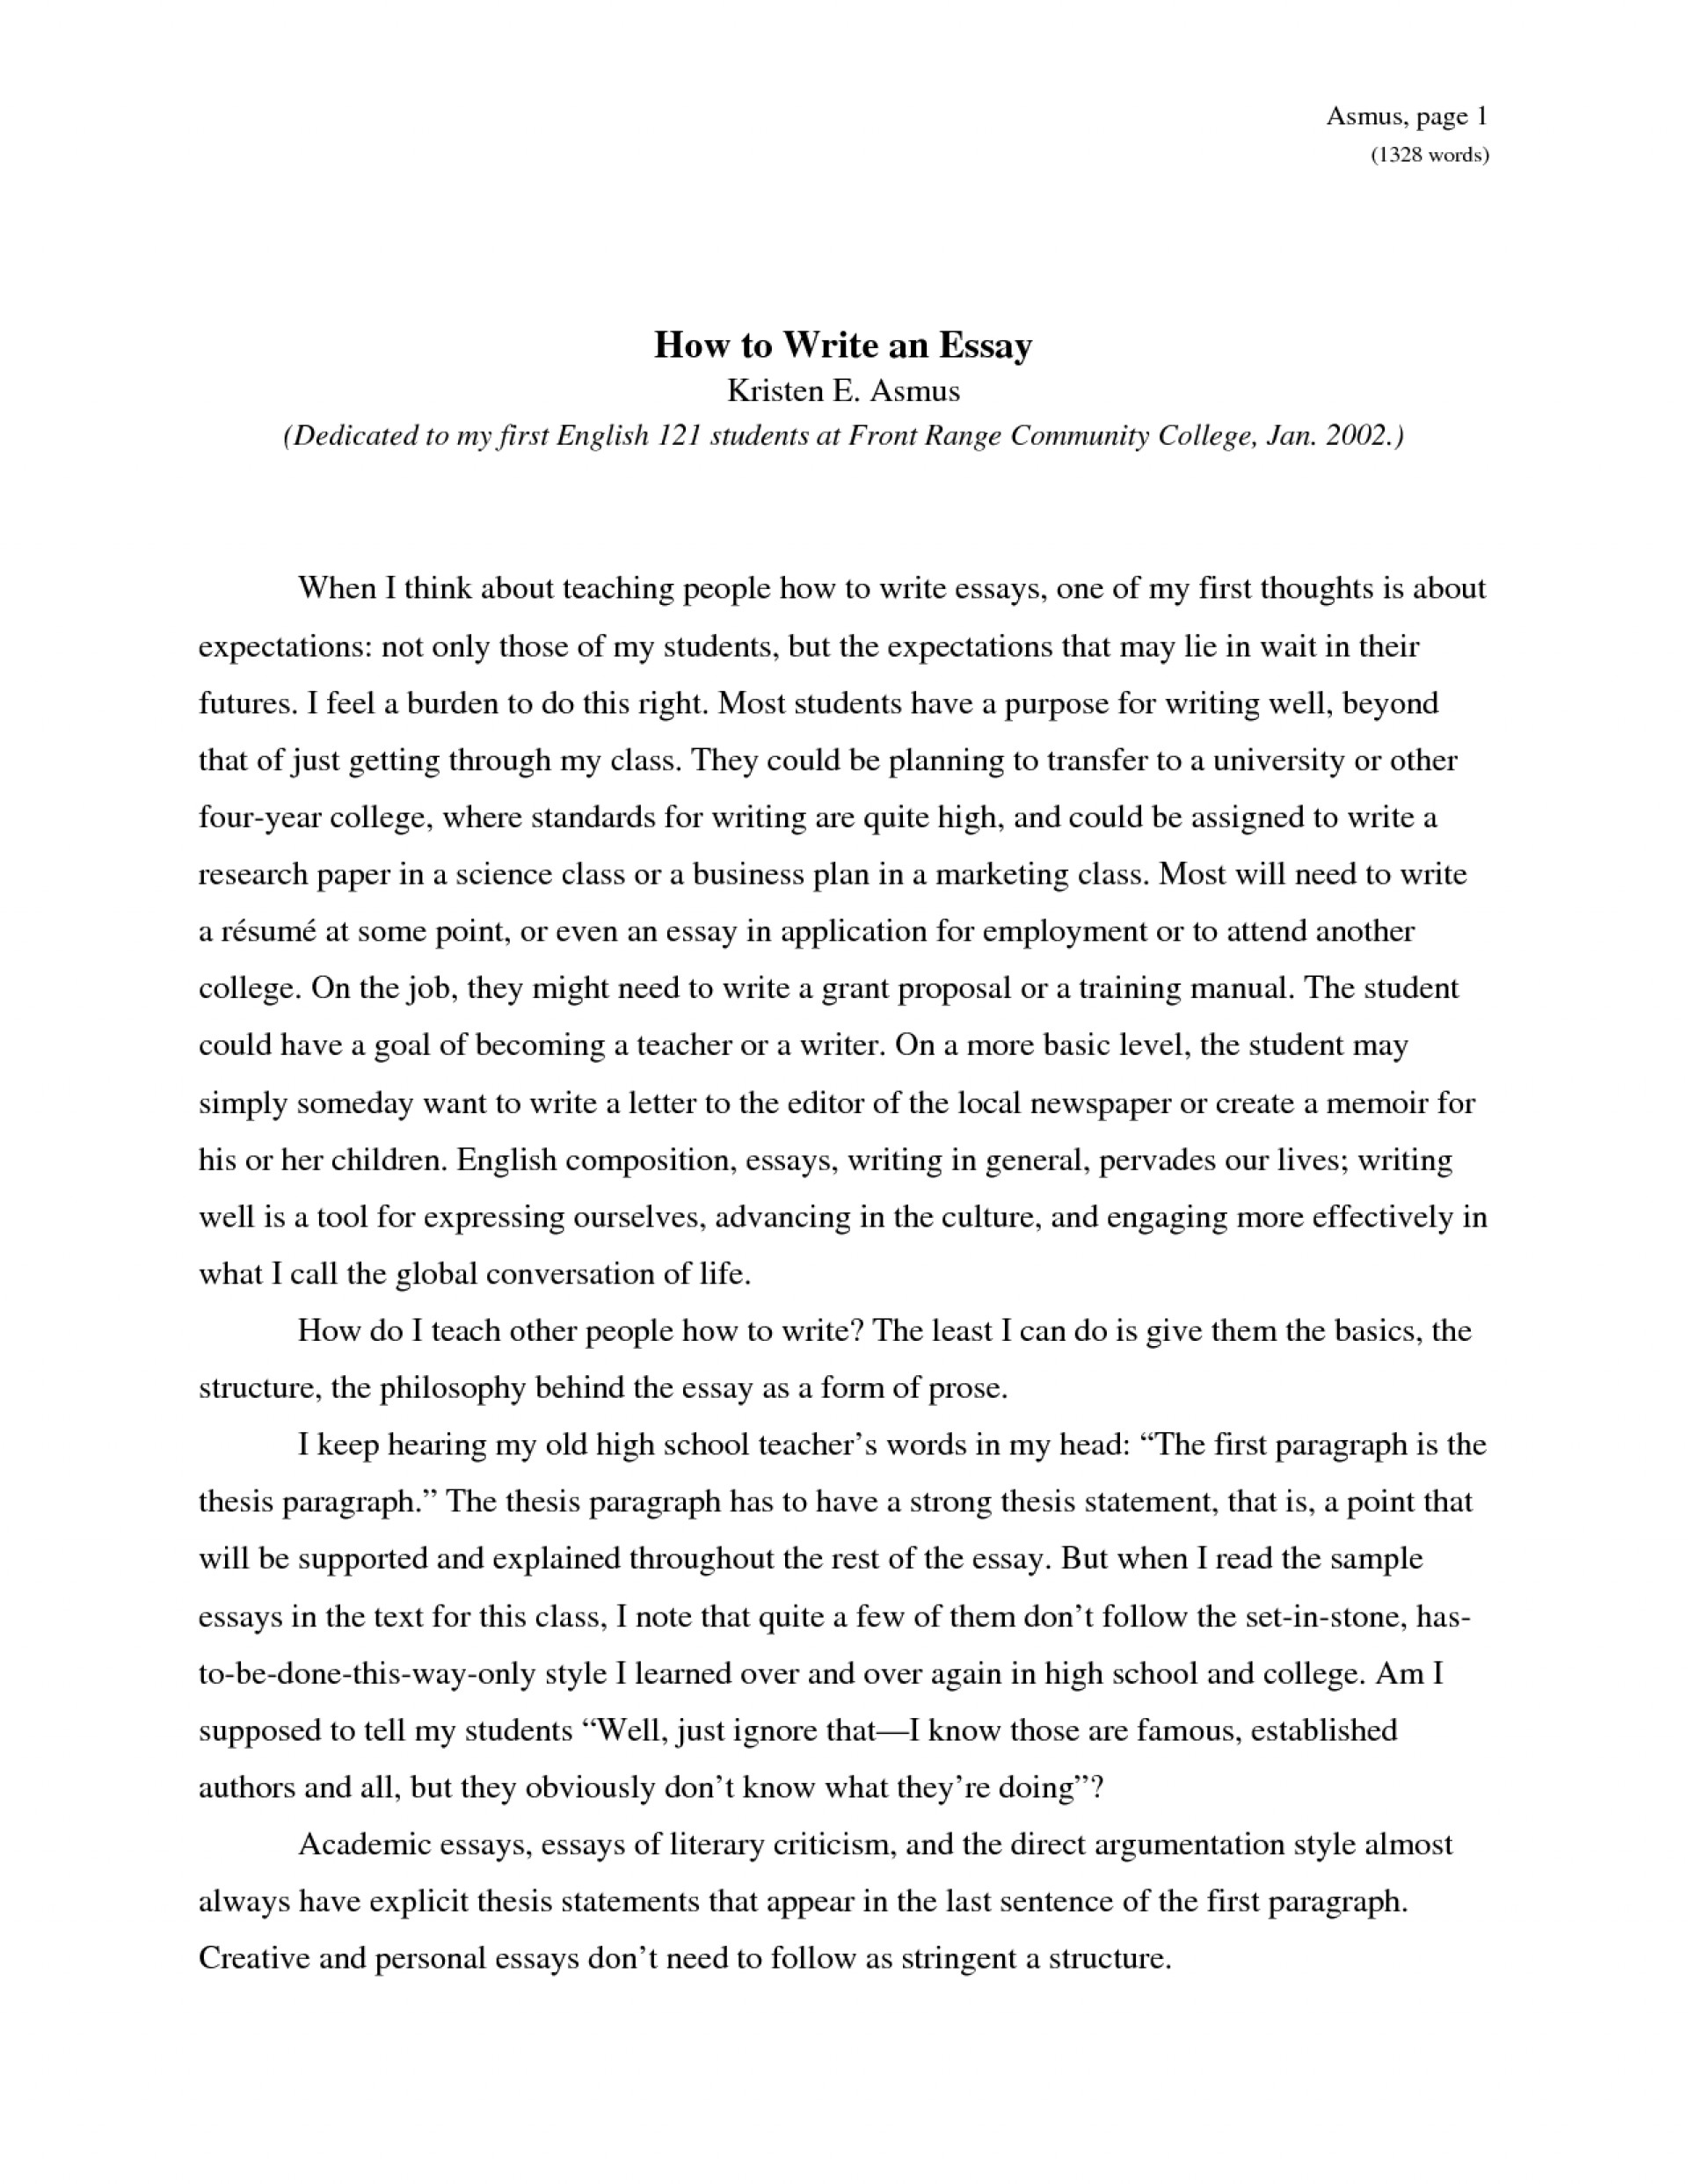 013 Essay Example How To Write An Obfuscata Sample Of L Shocking About Yourself Without Using I For College English Introduction 1920